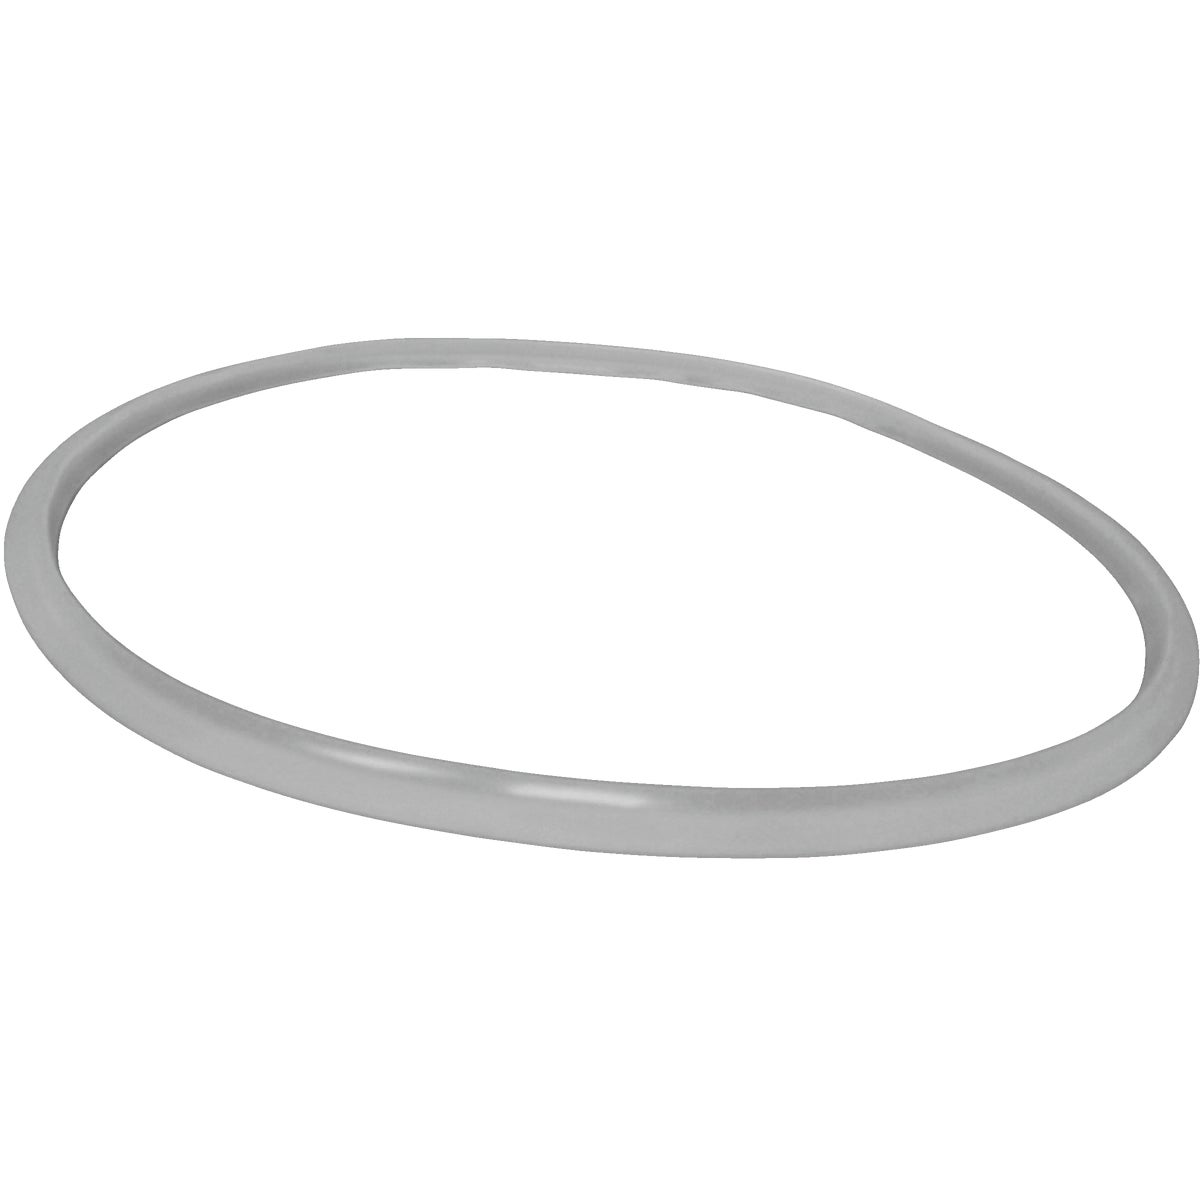 6QT REPLACEMENT GASKET - 92506 by T Fal Wearever